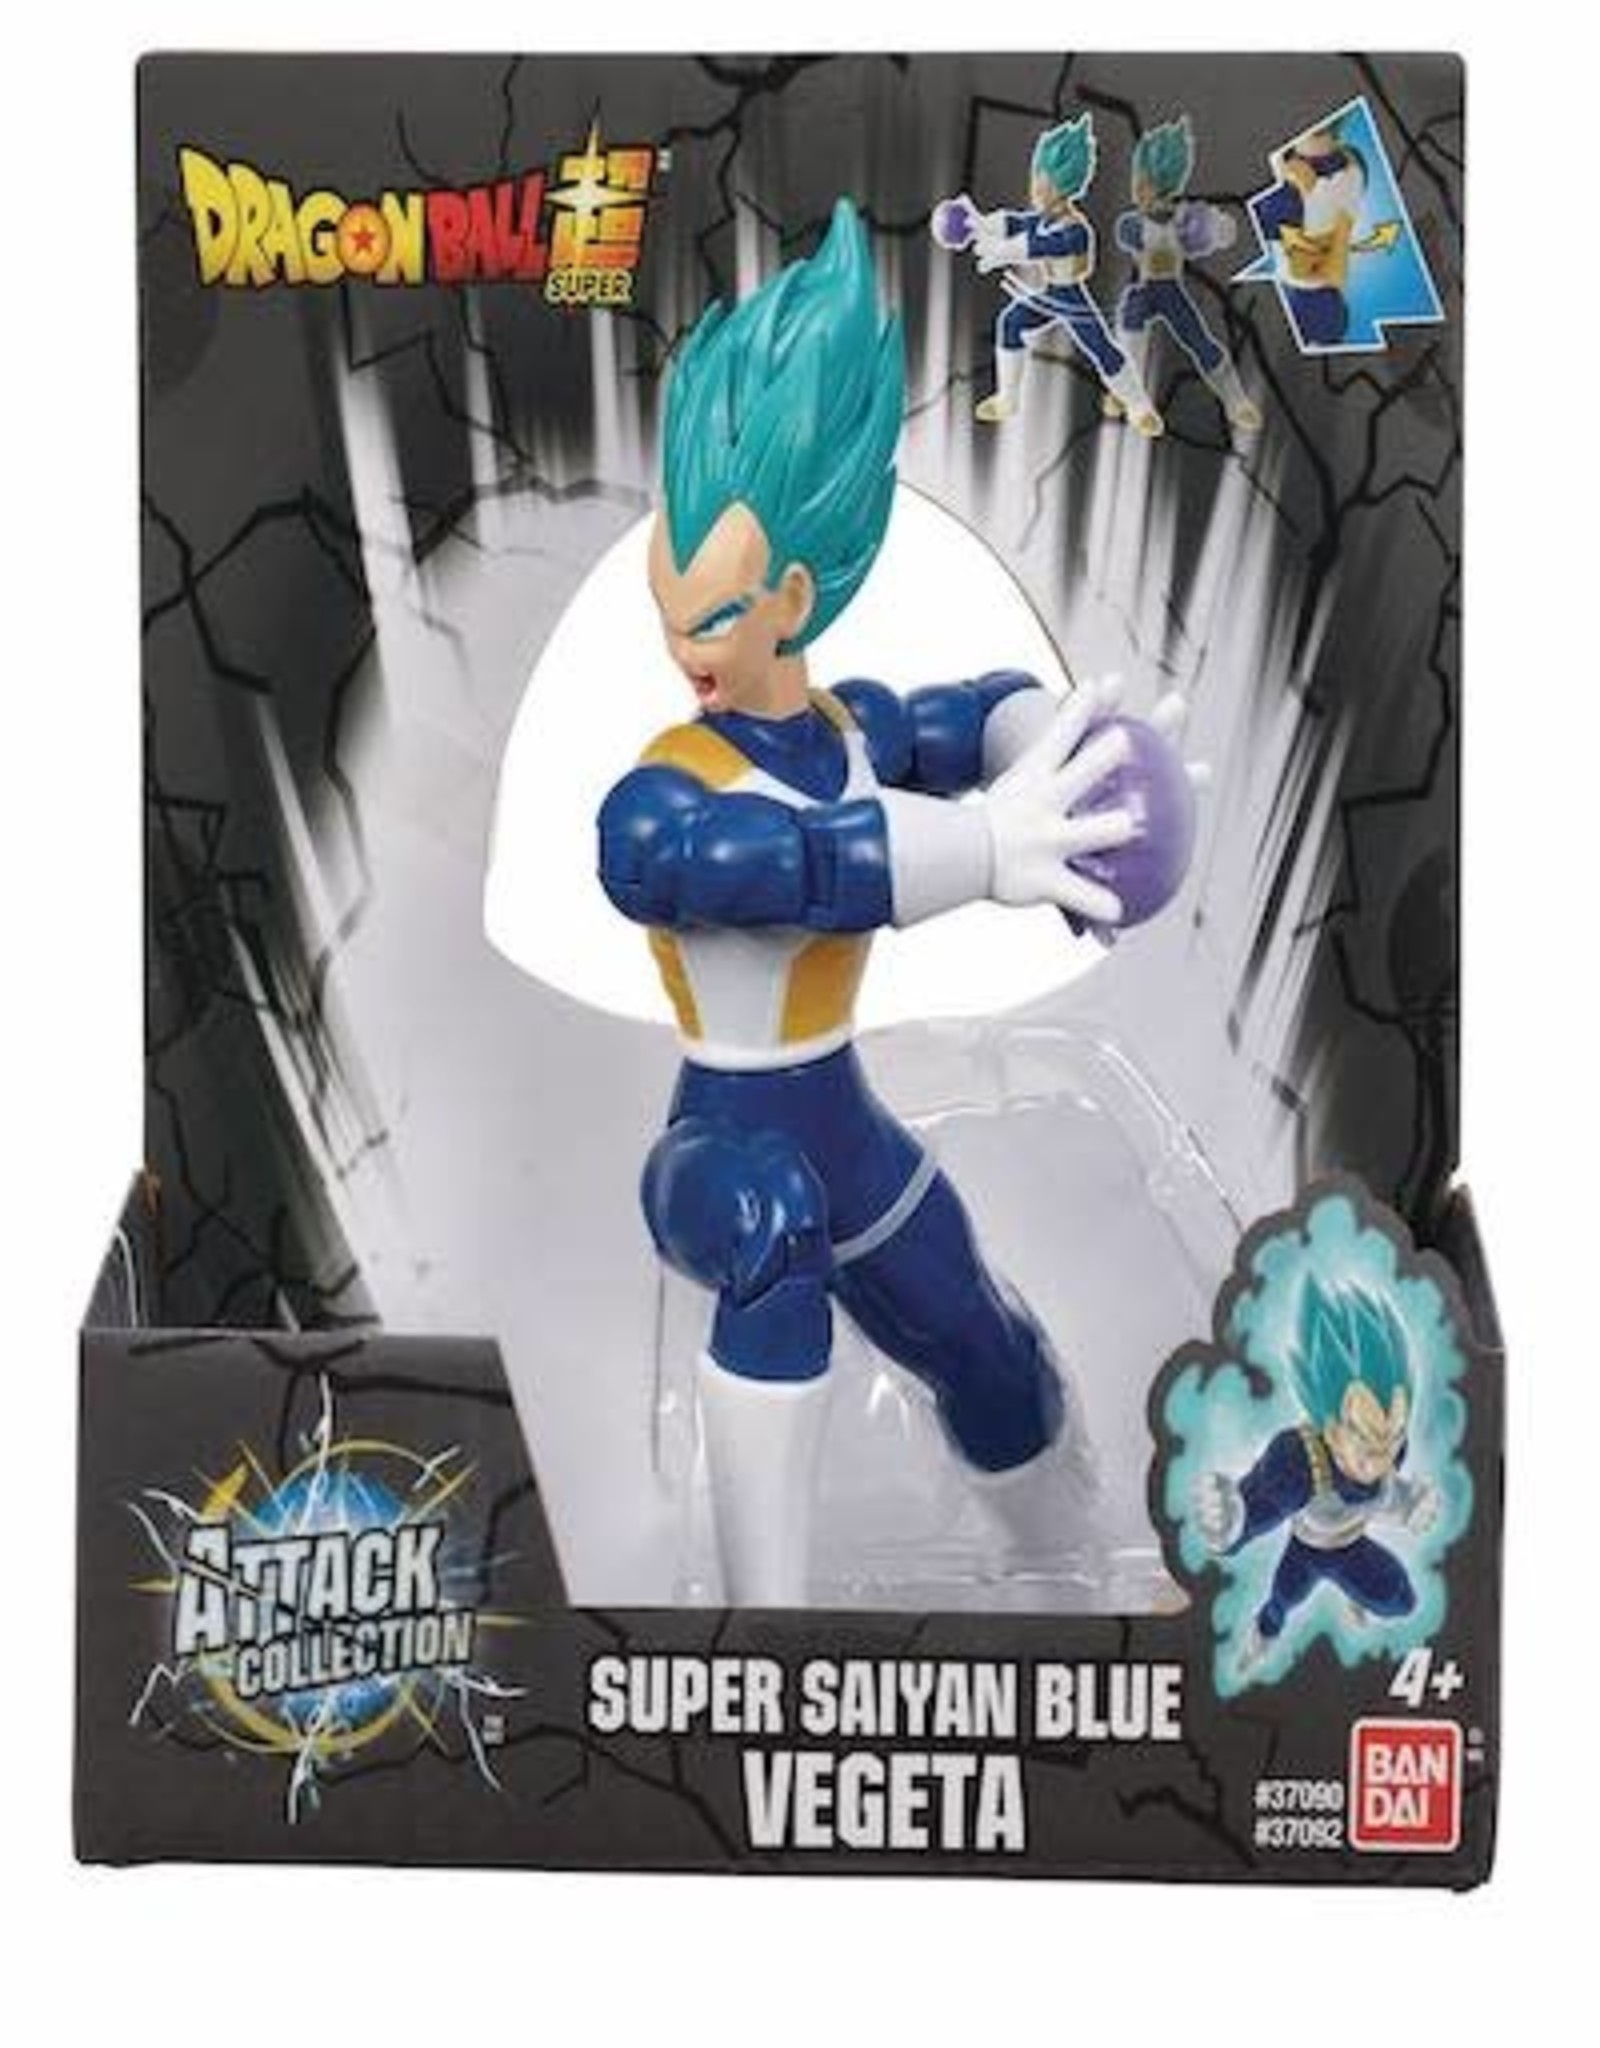 Bandai Dragon Ball Super Attack Collection Ss Blue Vegeta 7in Action Figure